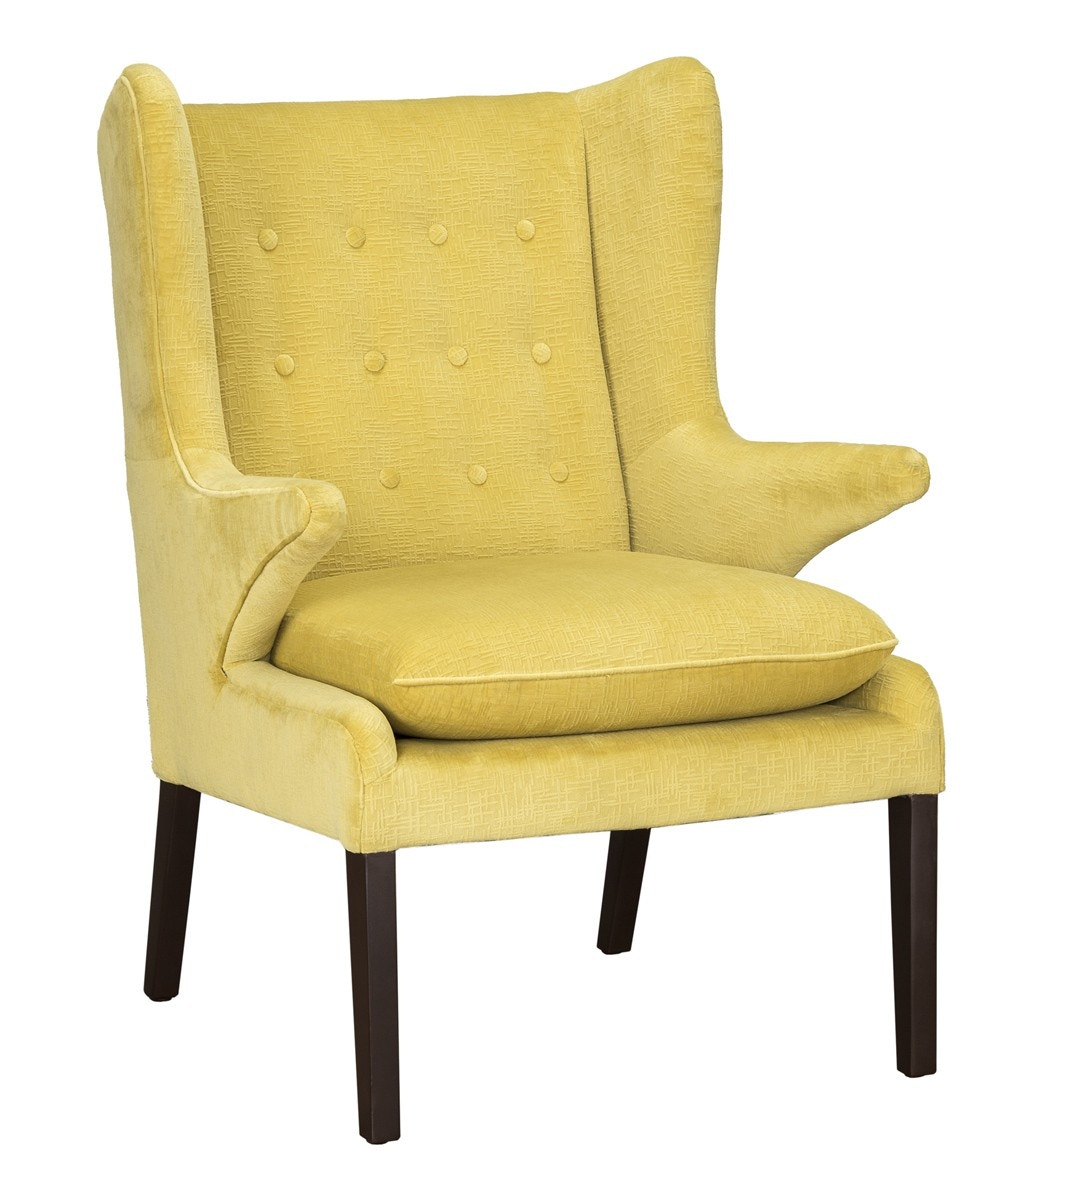 Classic Home Clover Accent Chair Mustard 53050526 In Portland, Oregon